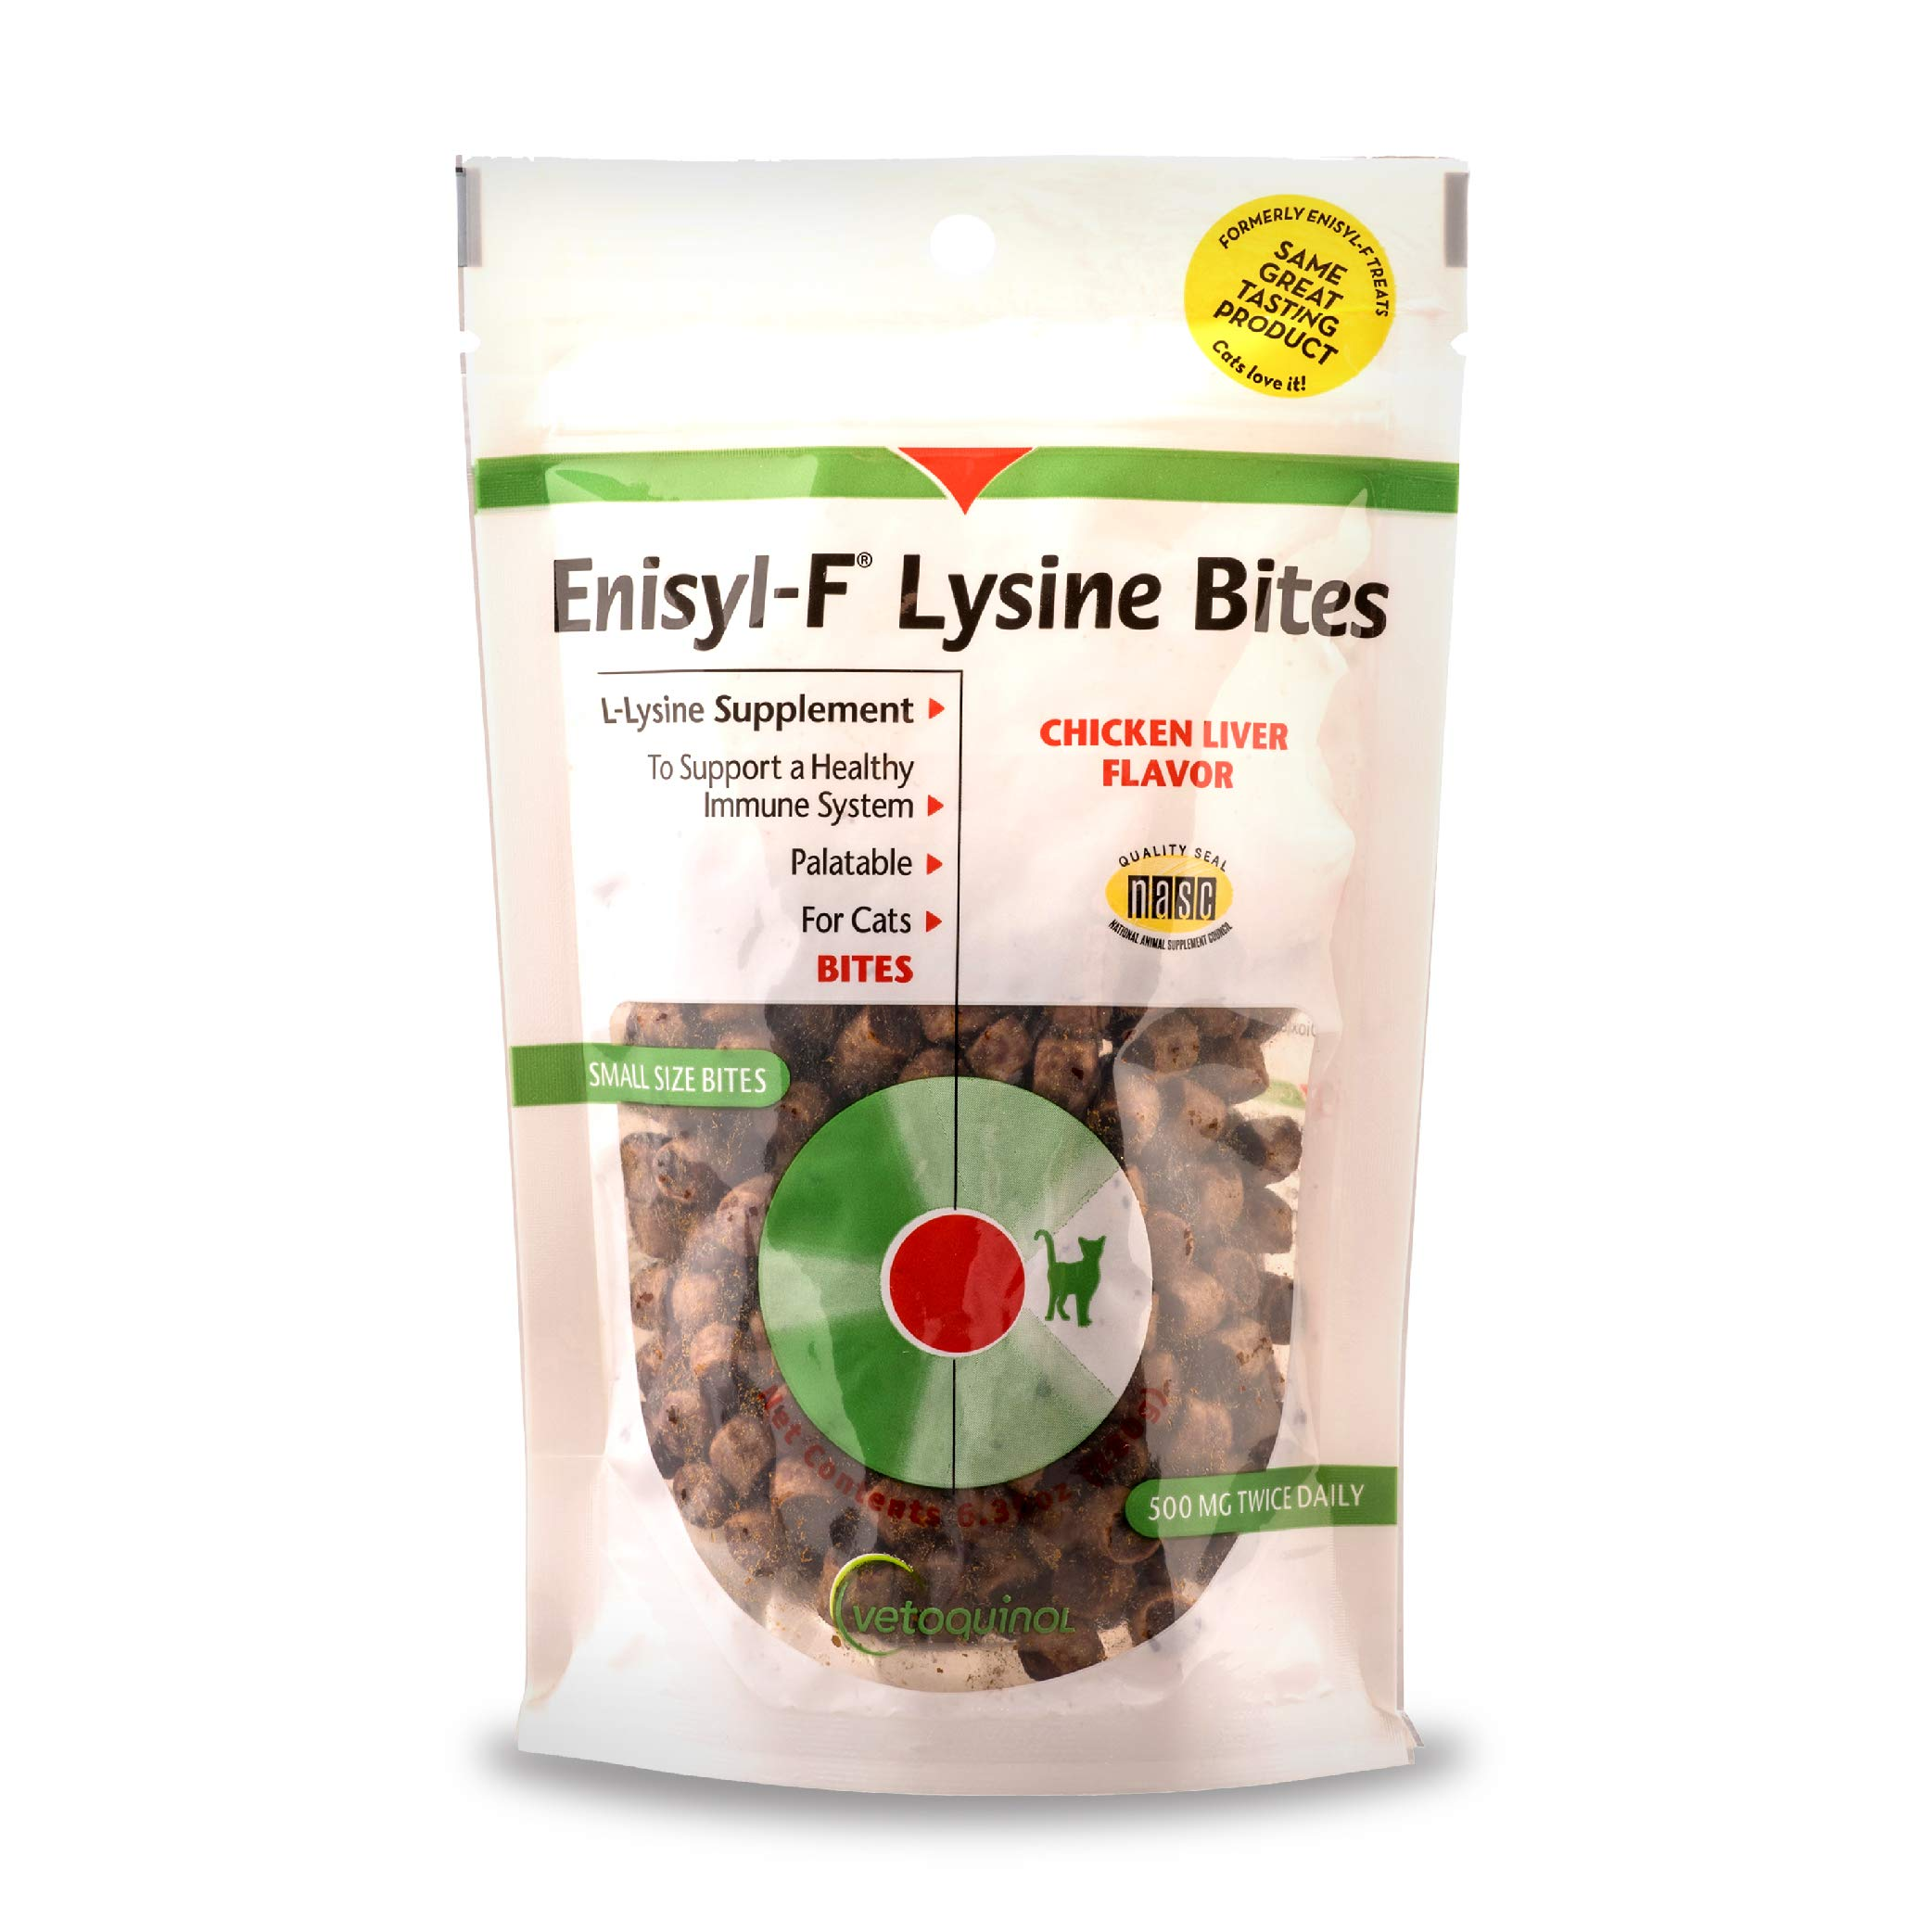 Vetoquinol Enisyl-F Lysine Bites: L-Lysine Chews for Cats & Kittens - Chicken Liver-Flavor, 6.4oz (180g) Reclosable Bag